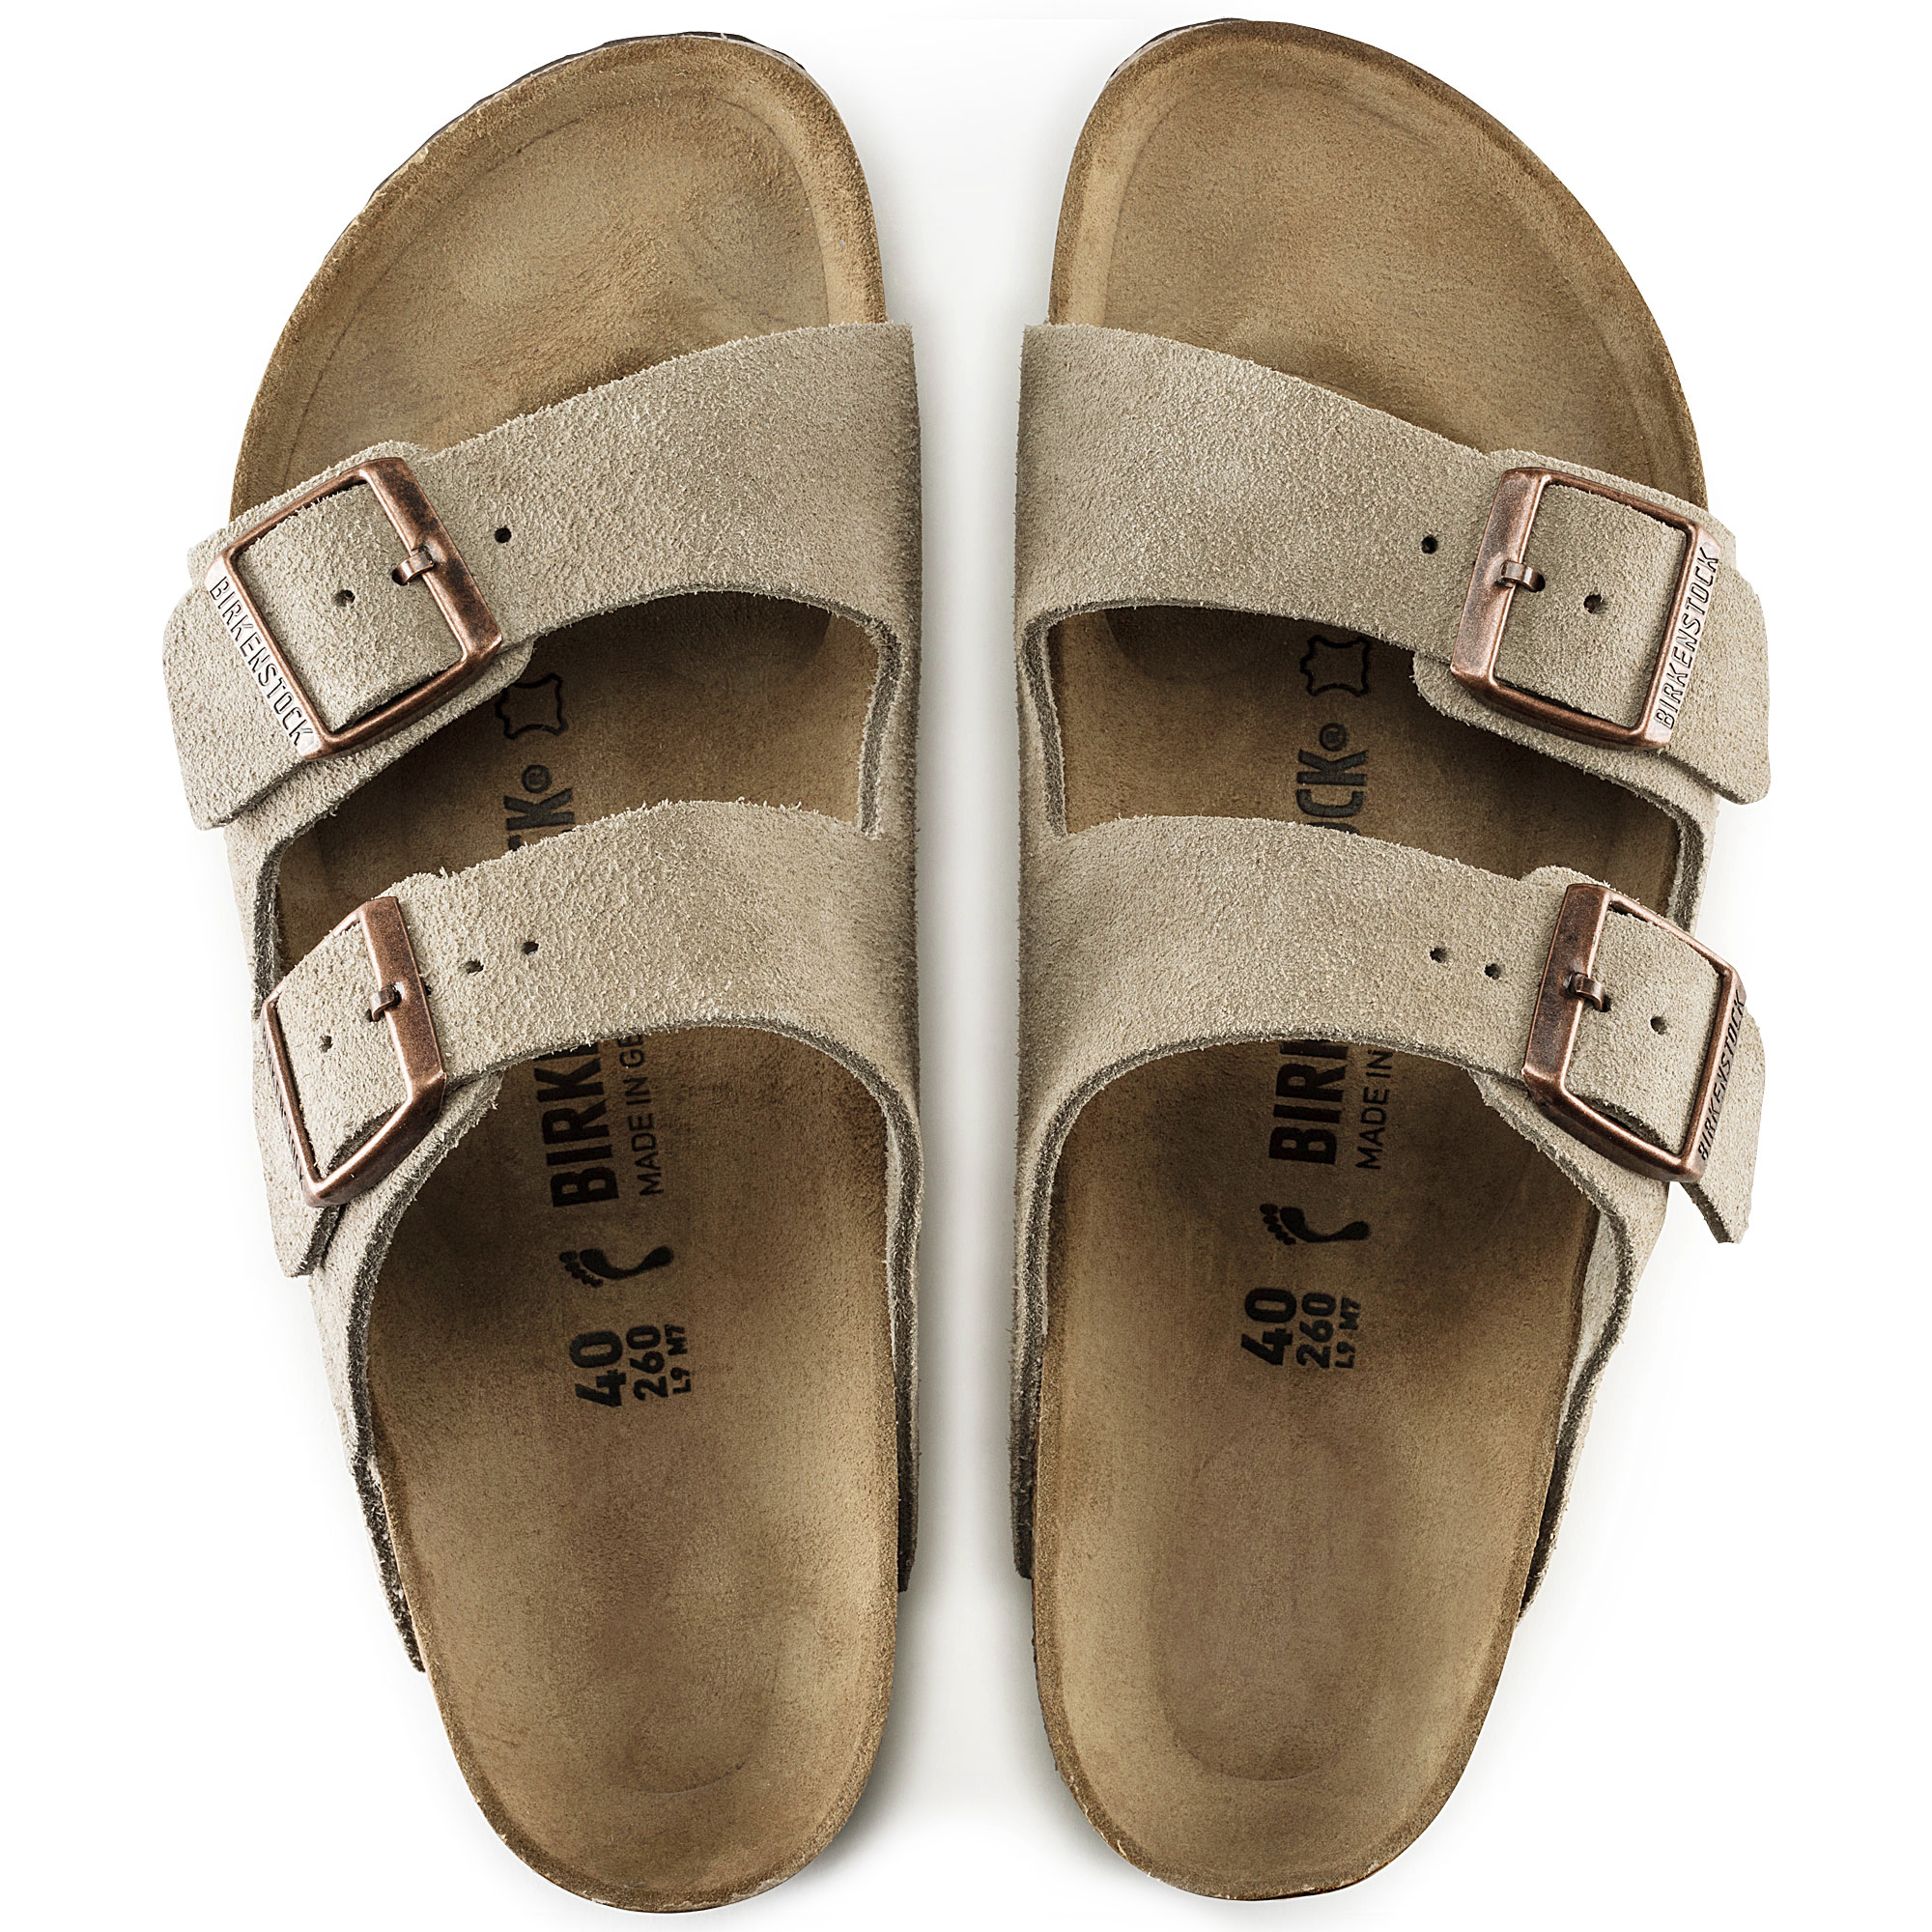 620680b7d52 ... Arizona Suede Leather Taupe